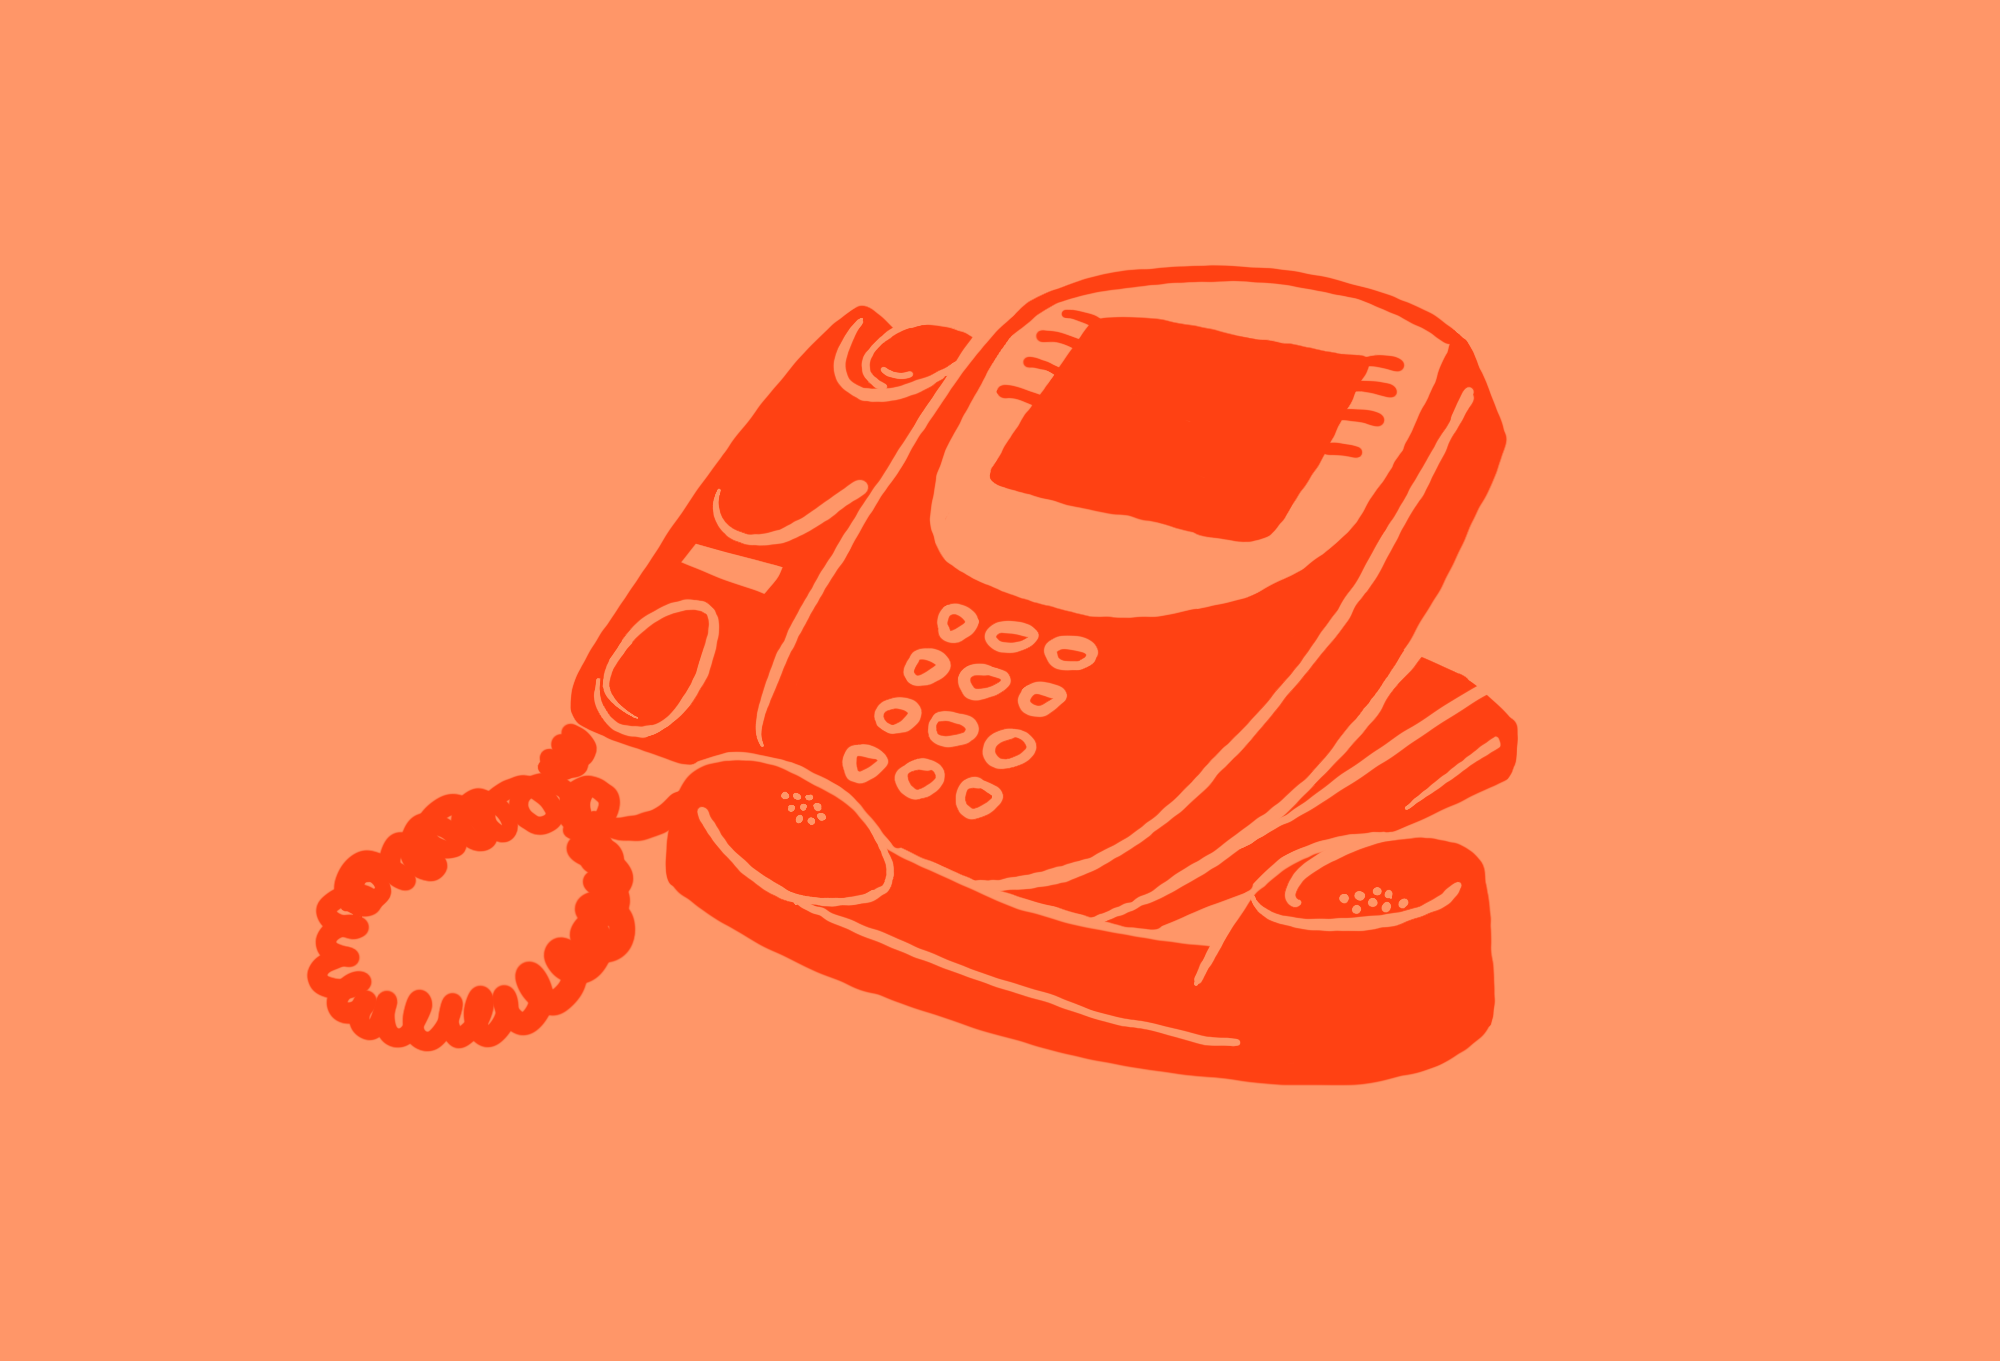 Phone-bold-aug16-colorful-orange.png